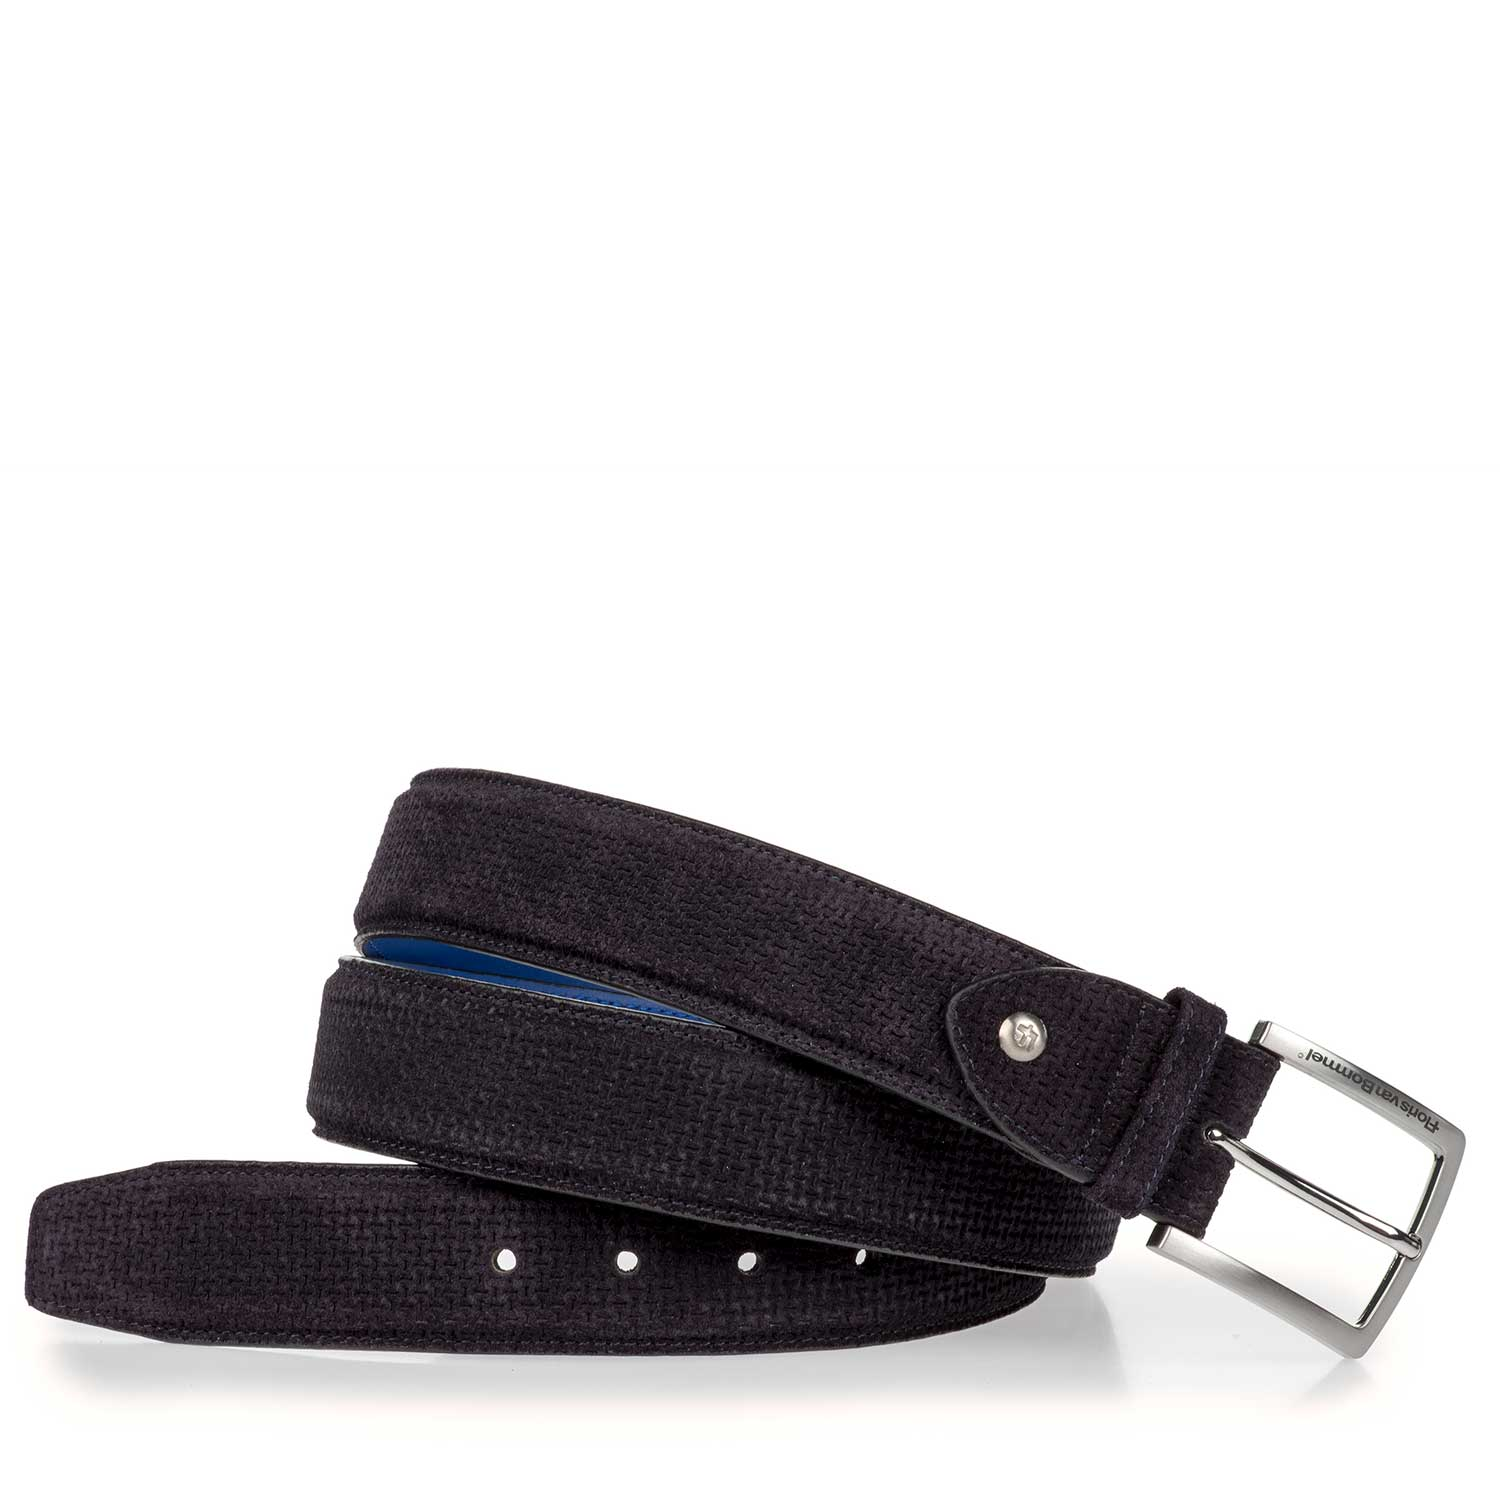 75189/18 - Suede leather belt with subtle structural pattern